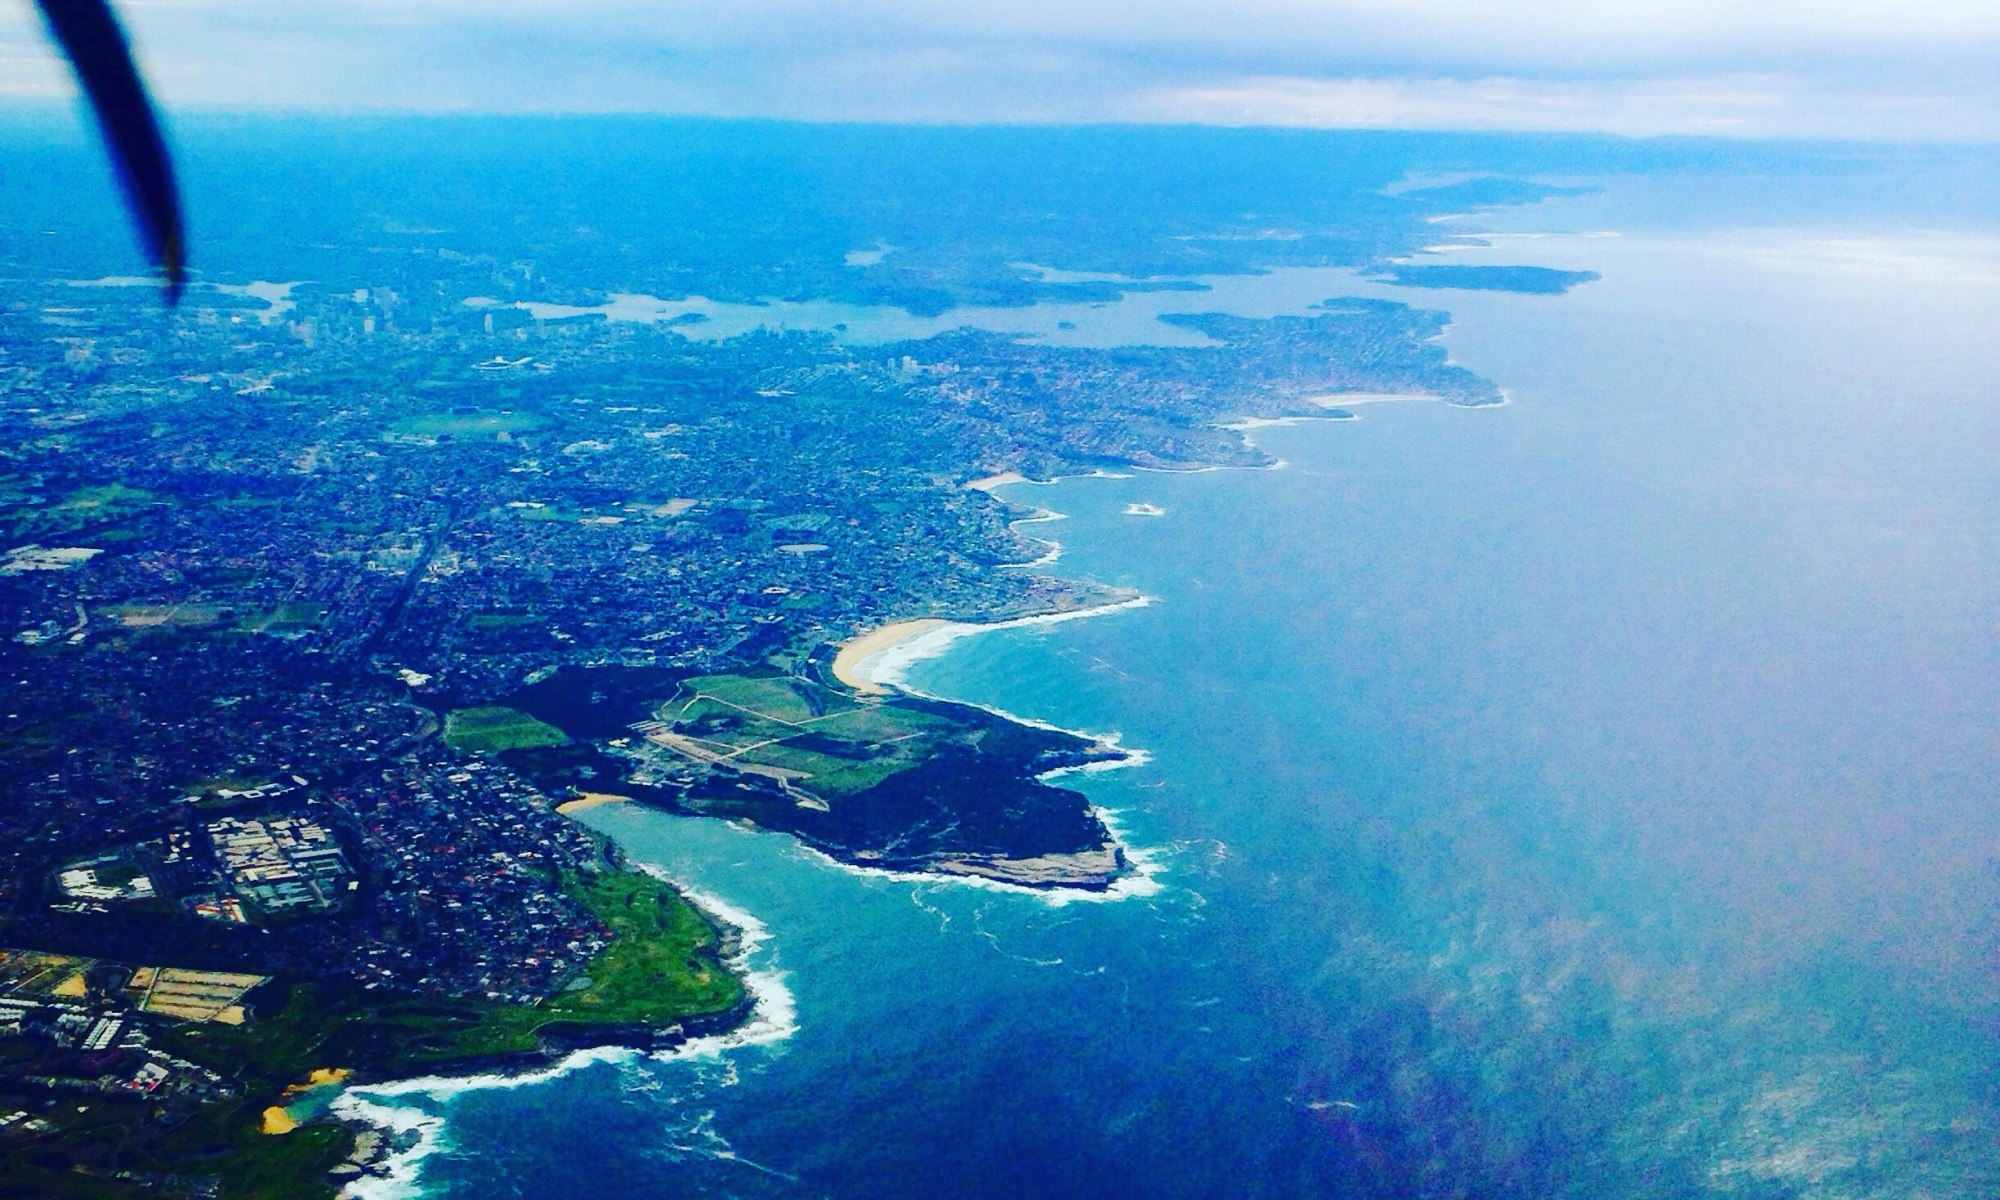 Flying into Sydney, view from the plane window